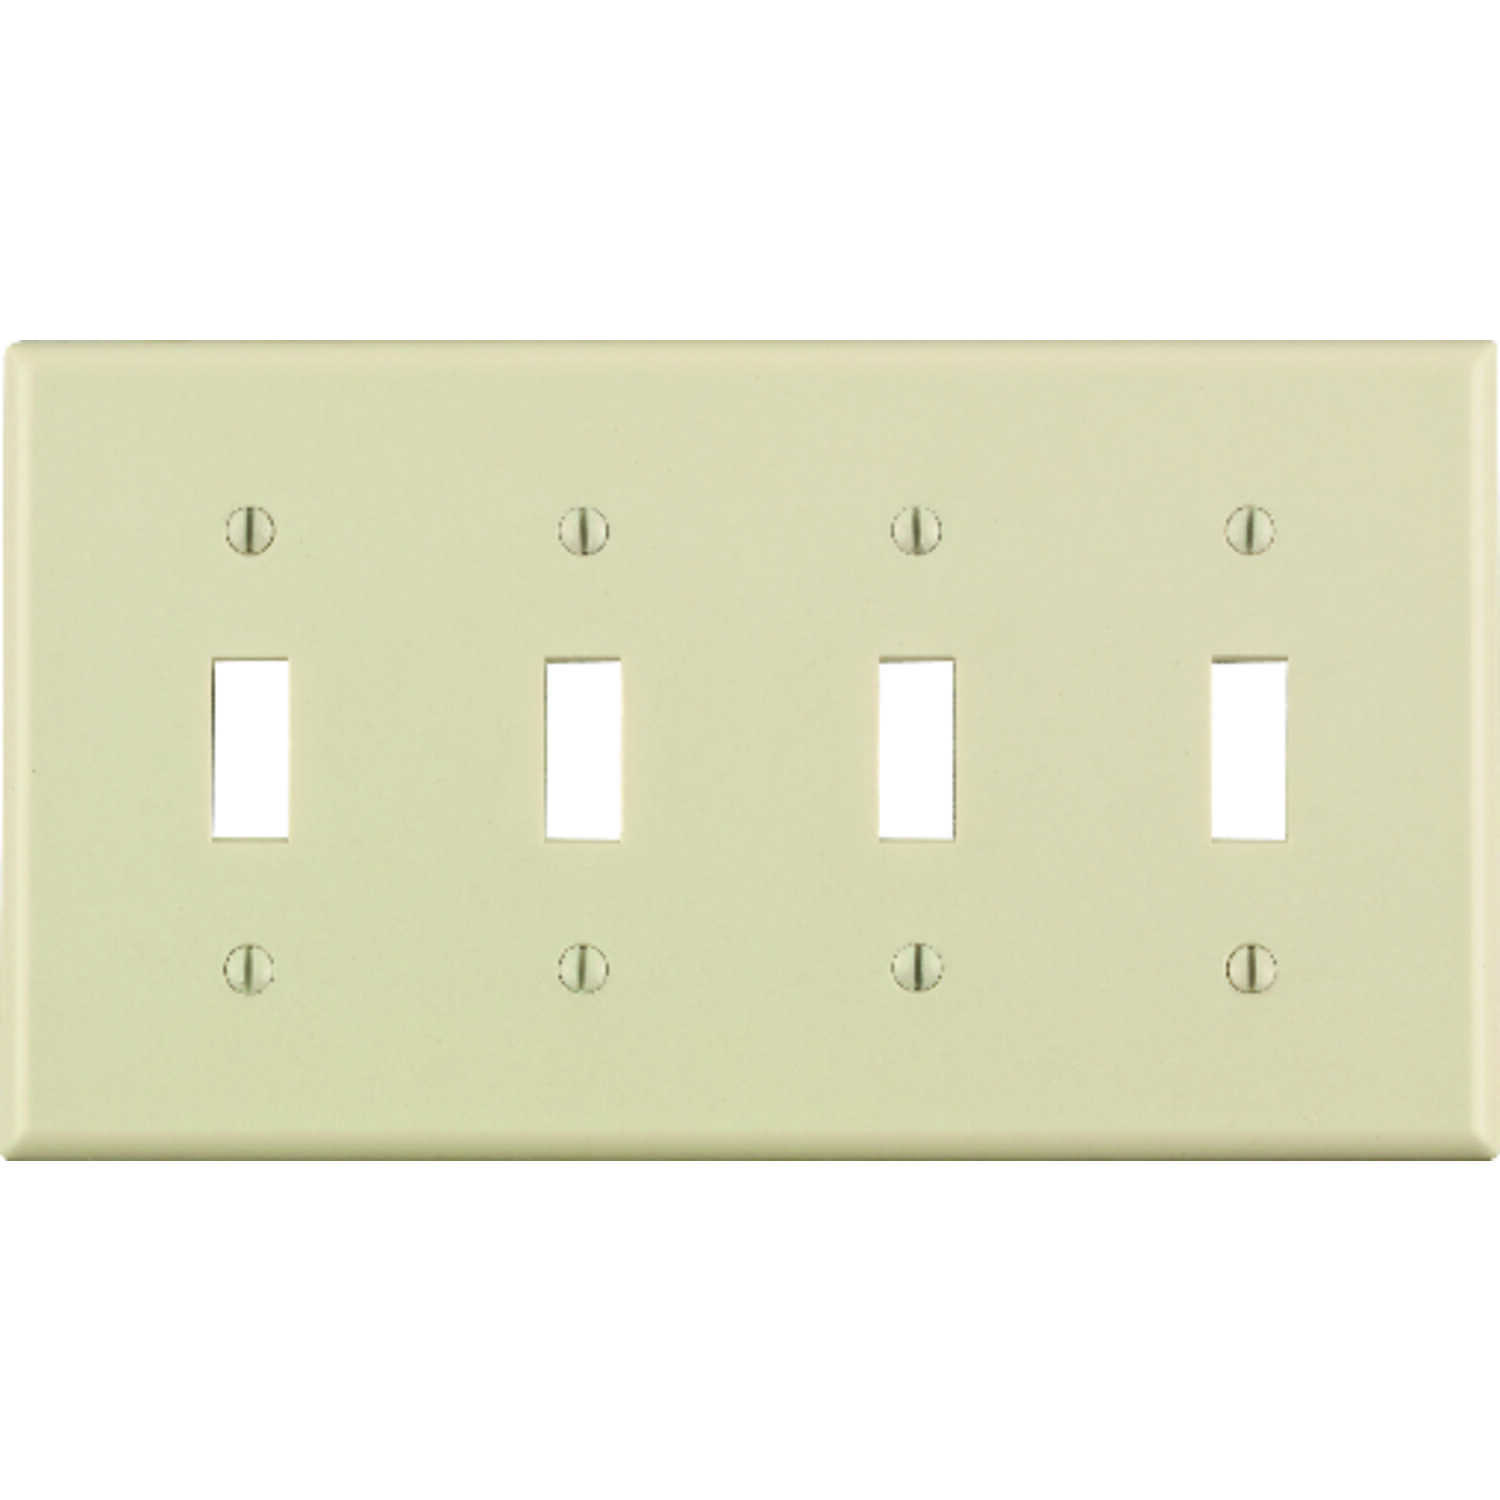 Leviton  Almond  4 gang Plastic  Toggle  Wall Plate  1 pk